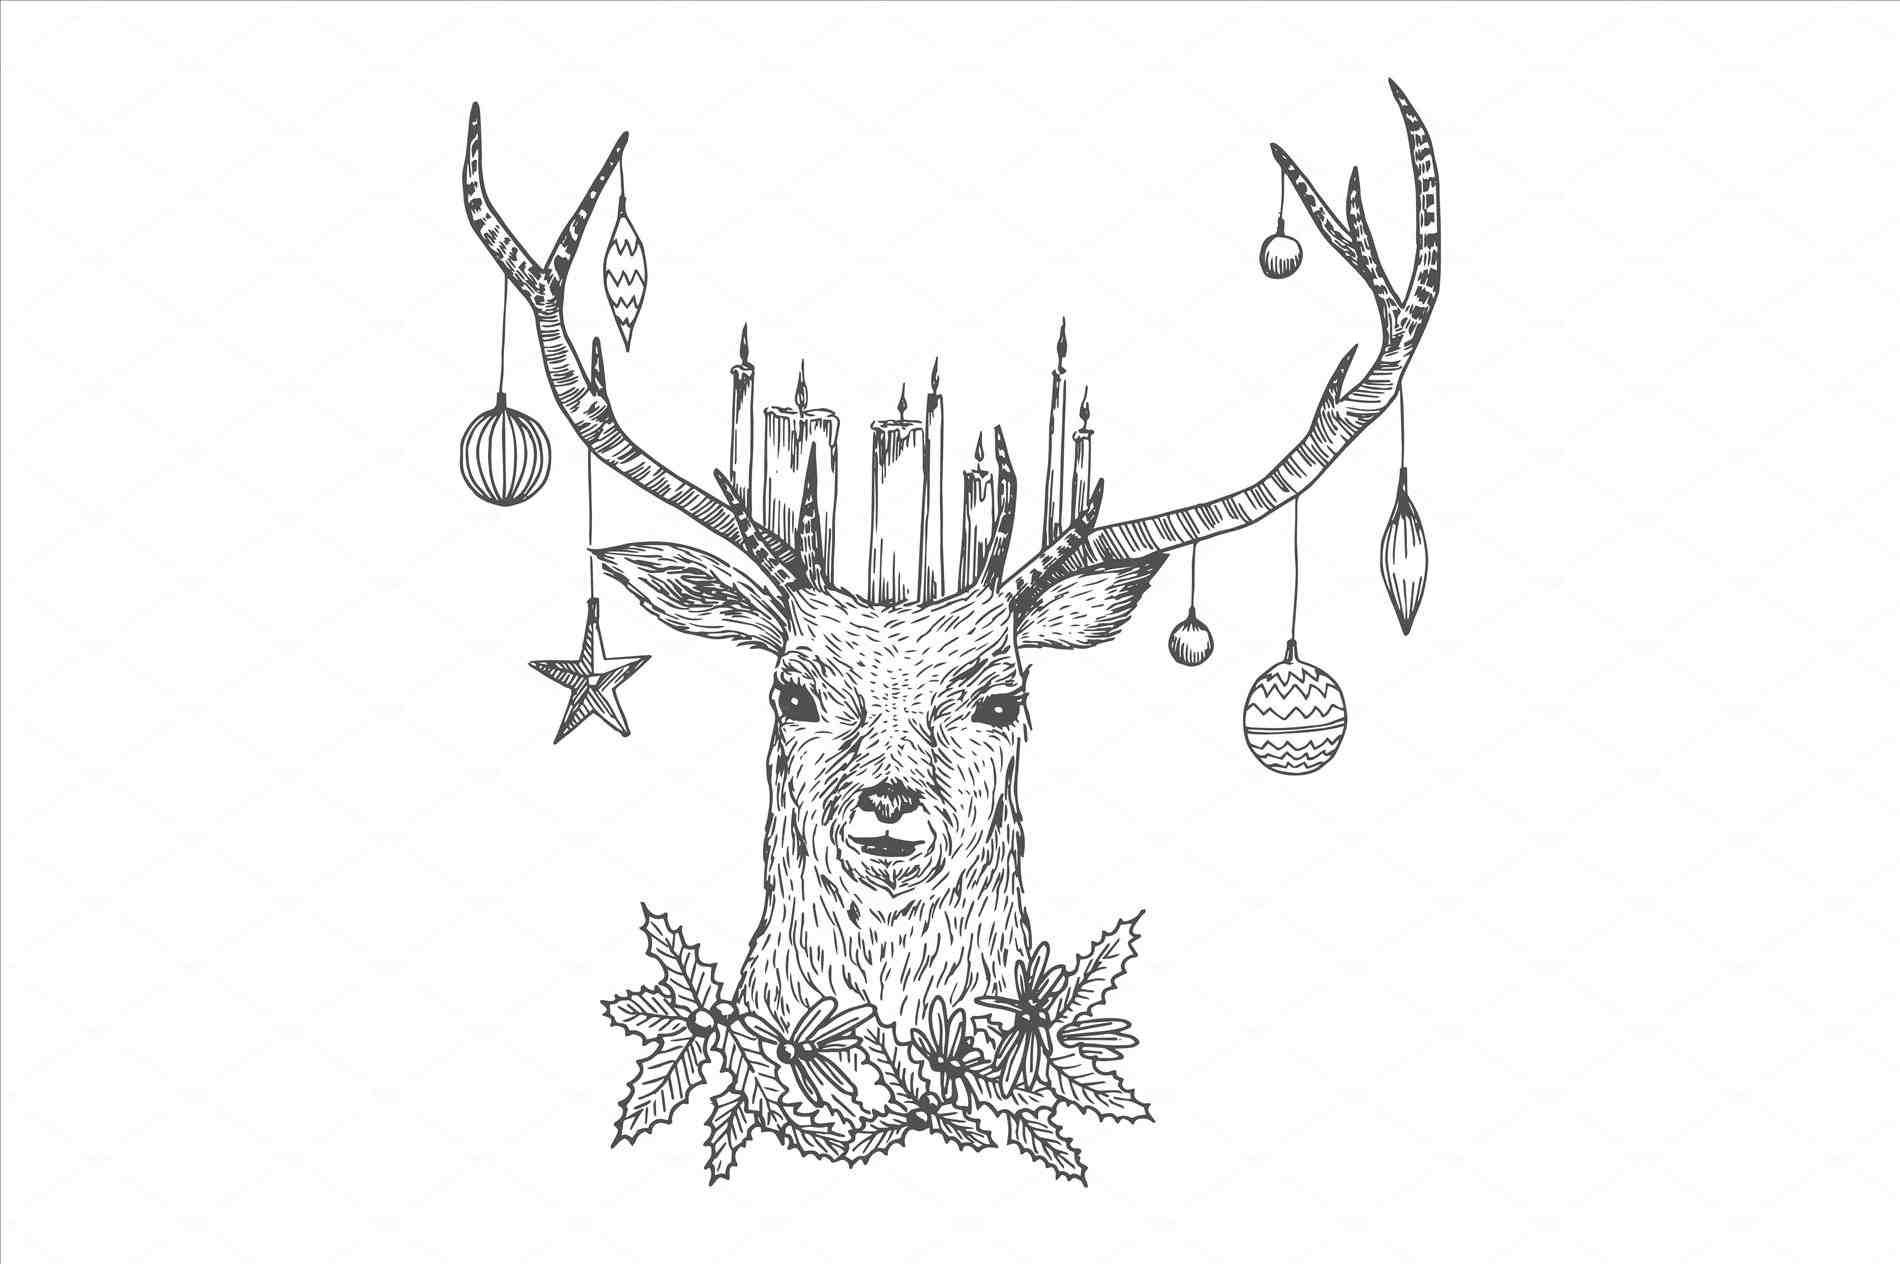 Disegni Di Natale Tumbrl.Tumblr Drawings Hipster Black And White Natale Natale Disegni E